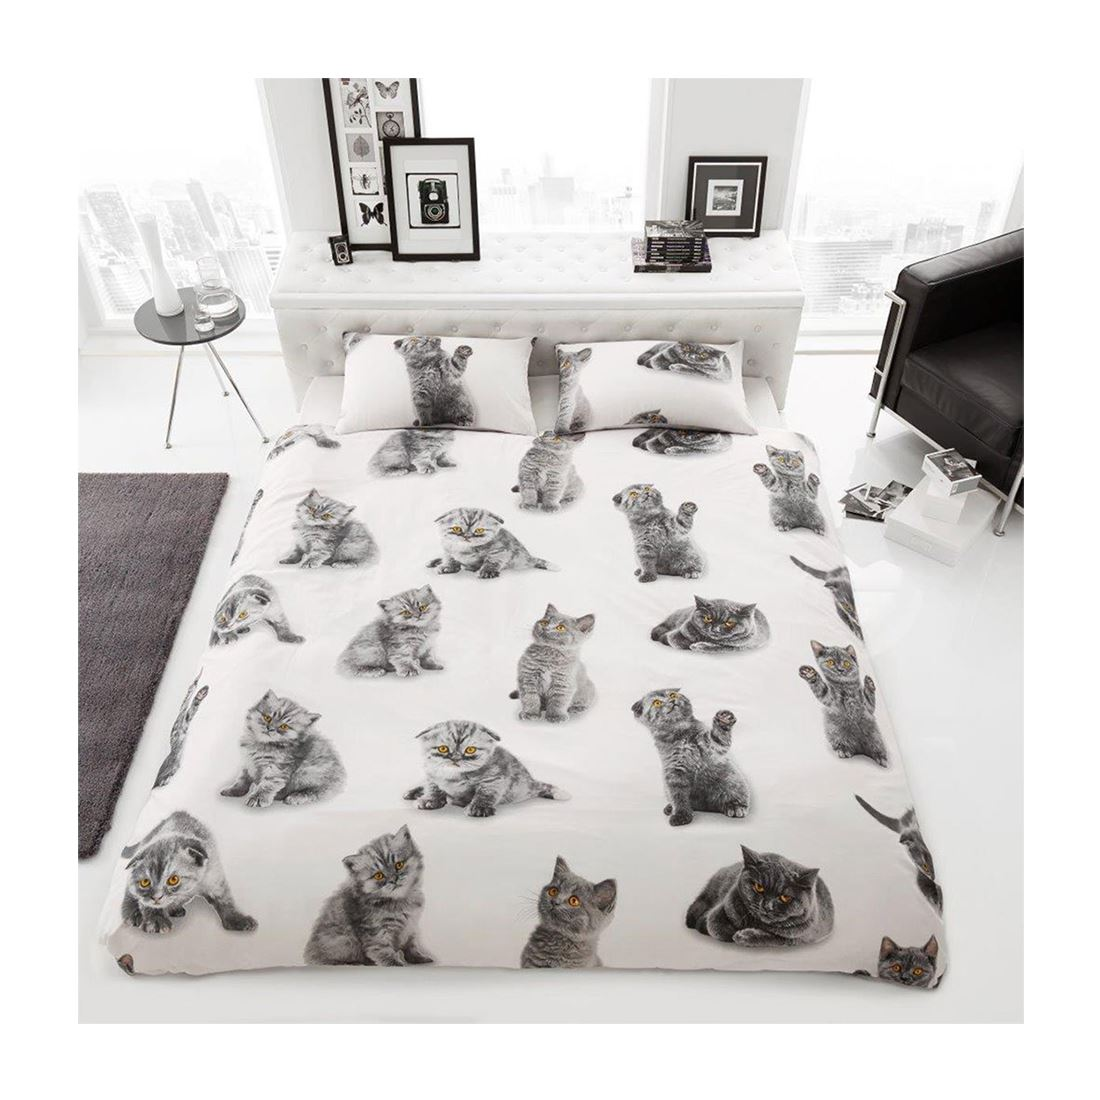 3D Cat Kitten Print Duvet Cover Bedding Set